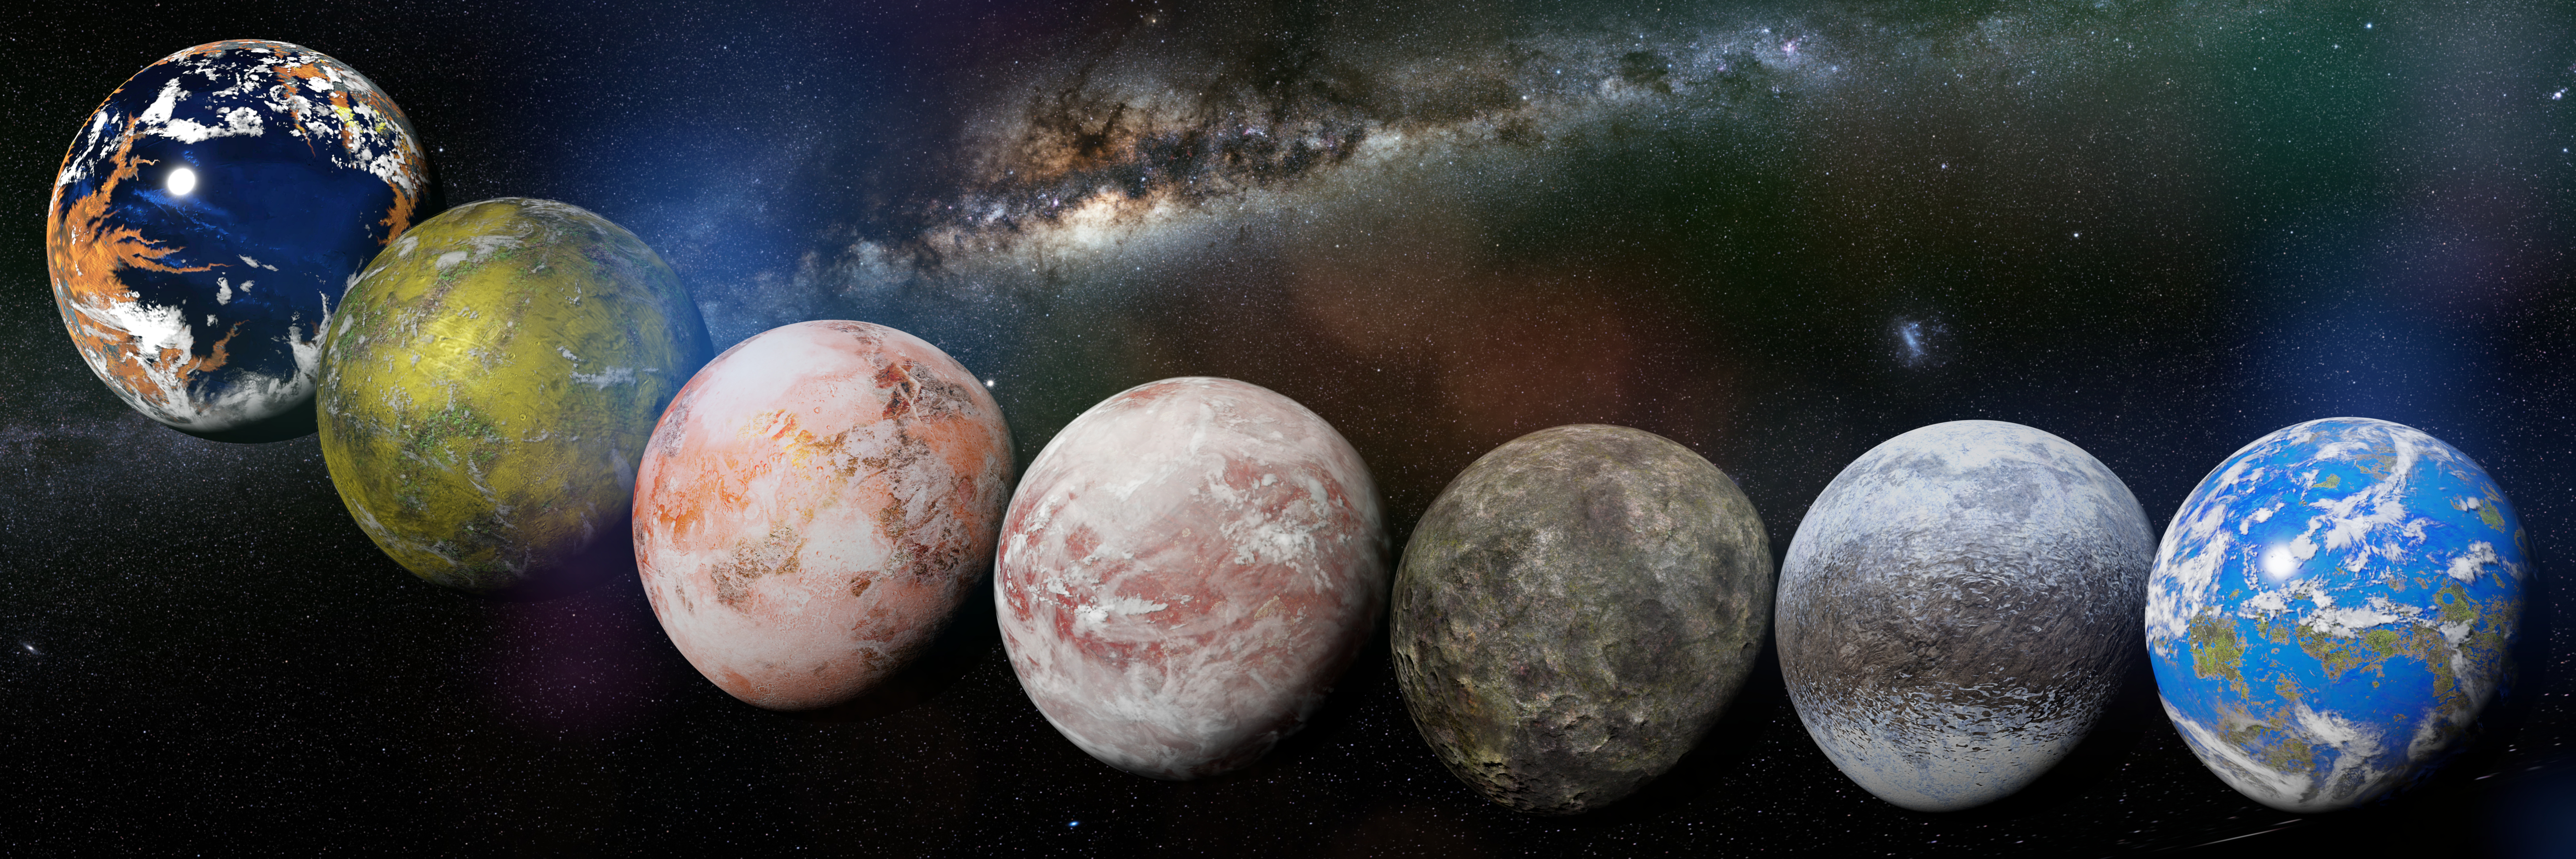 collection of alien planets in front of the Milky Way galaxy, nearby exoplanets